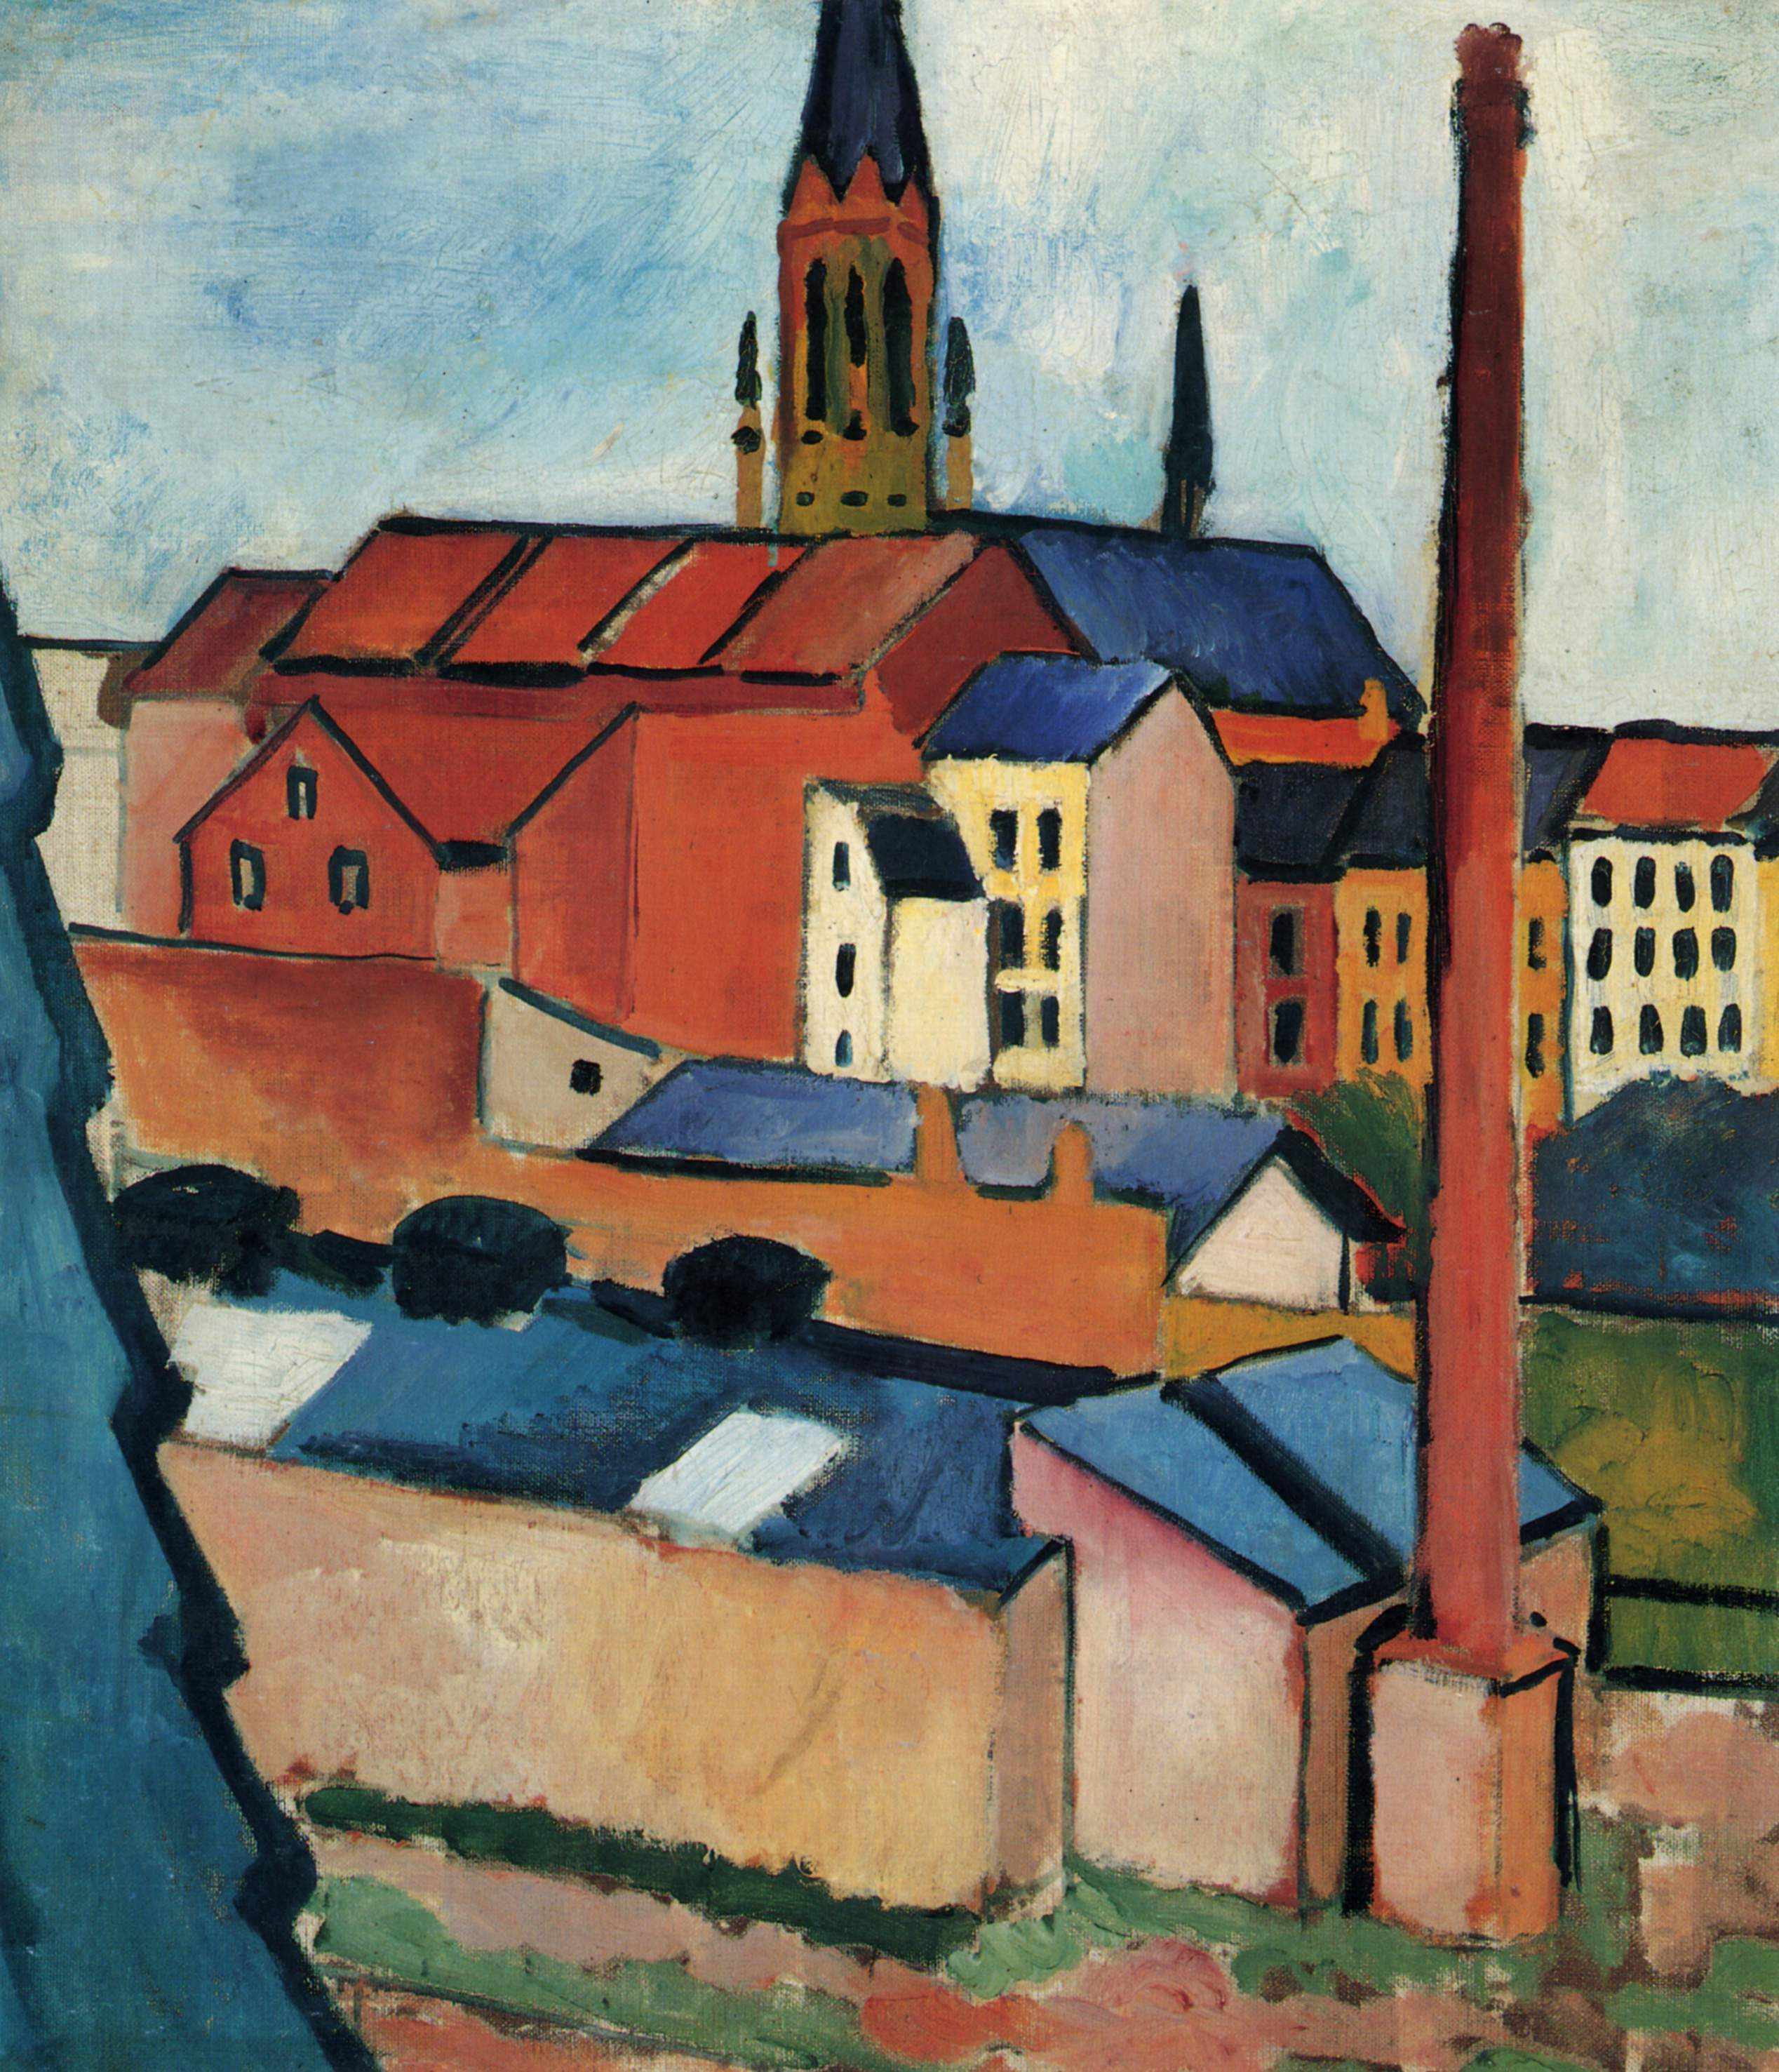 http://germanexpressionism.net/wp-content/uploads/2014/04/German-Expressionist-August-Macke.jpg